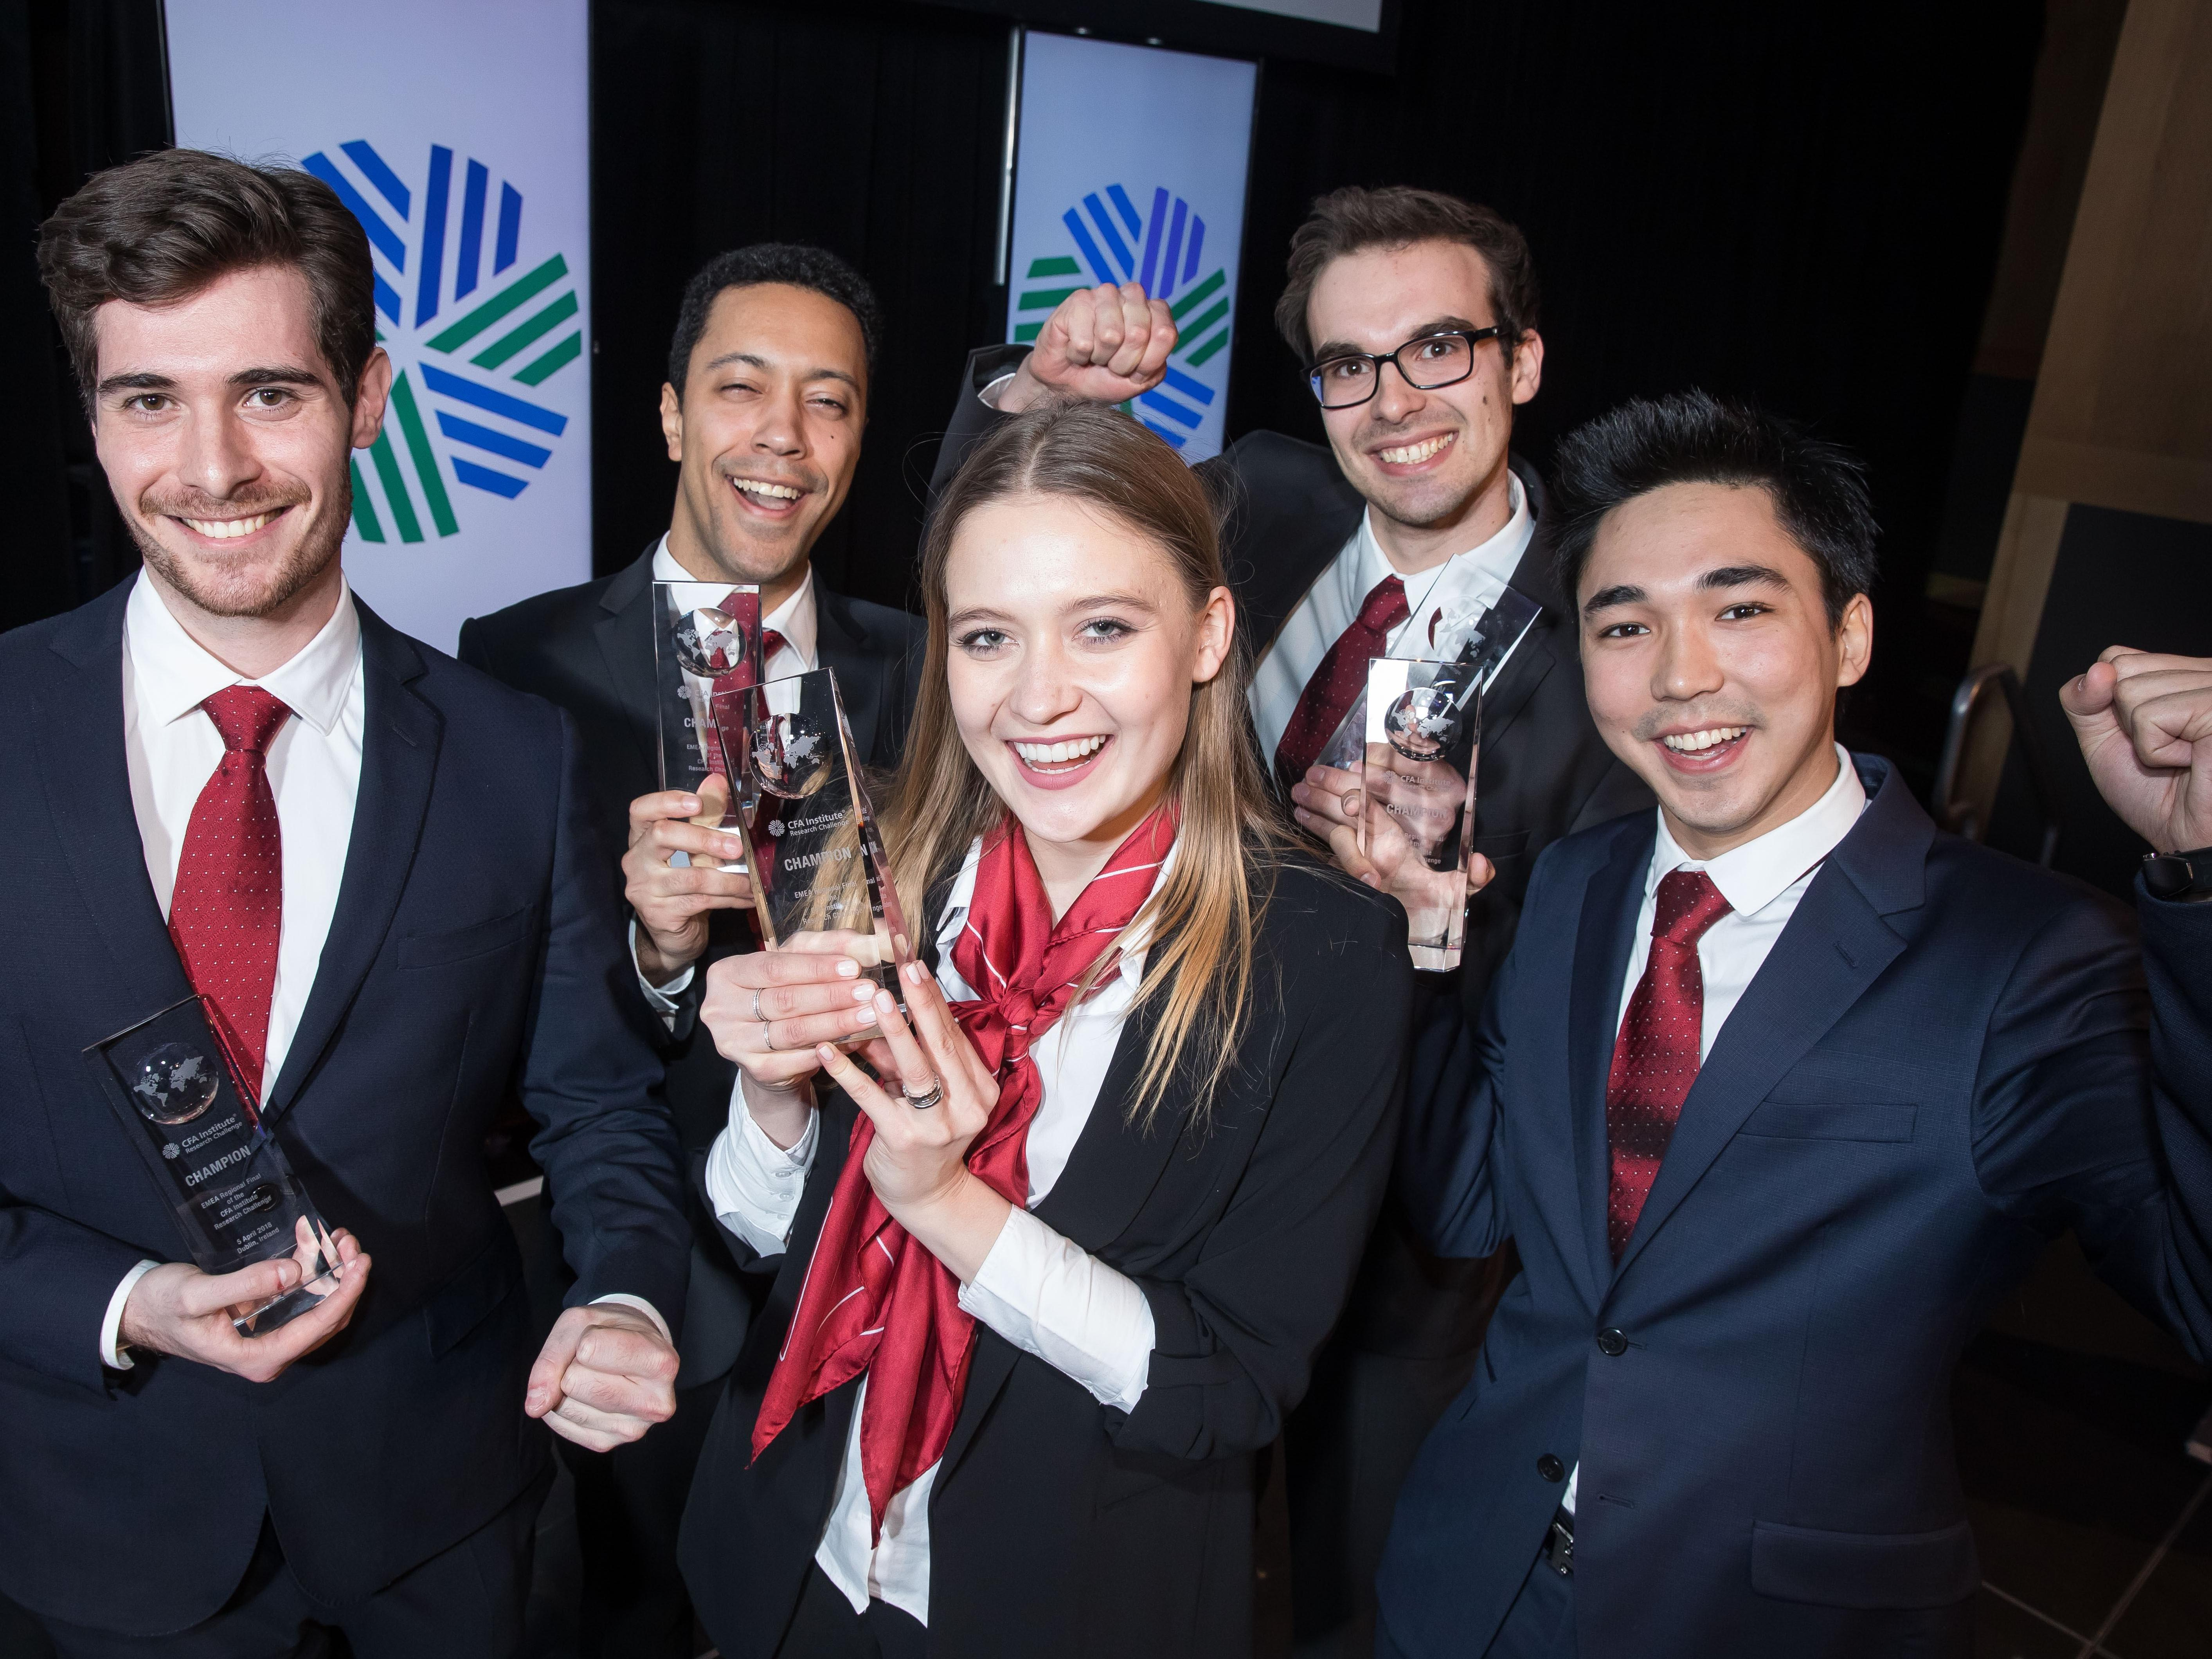 HEC Lausanne team wins the EMEA regional final of the Swiss CFA Institute Research Challenge